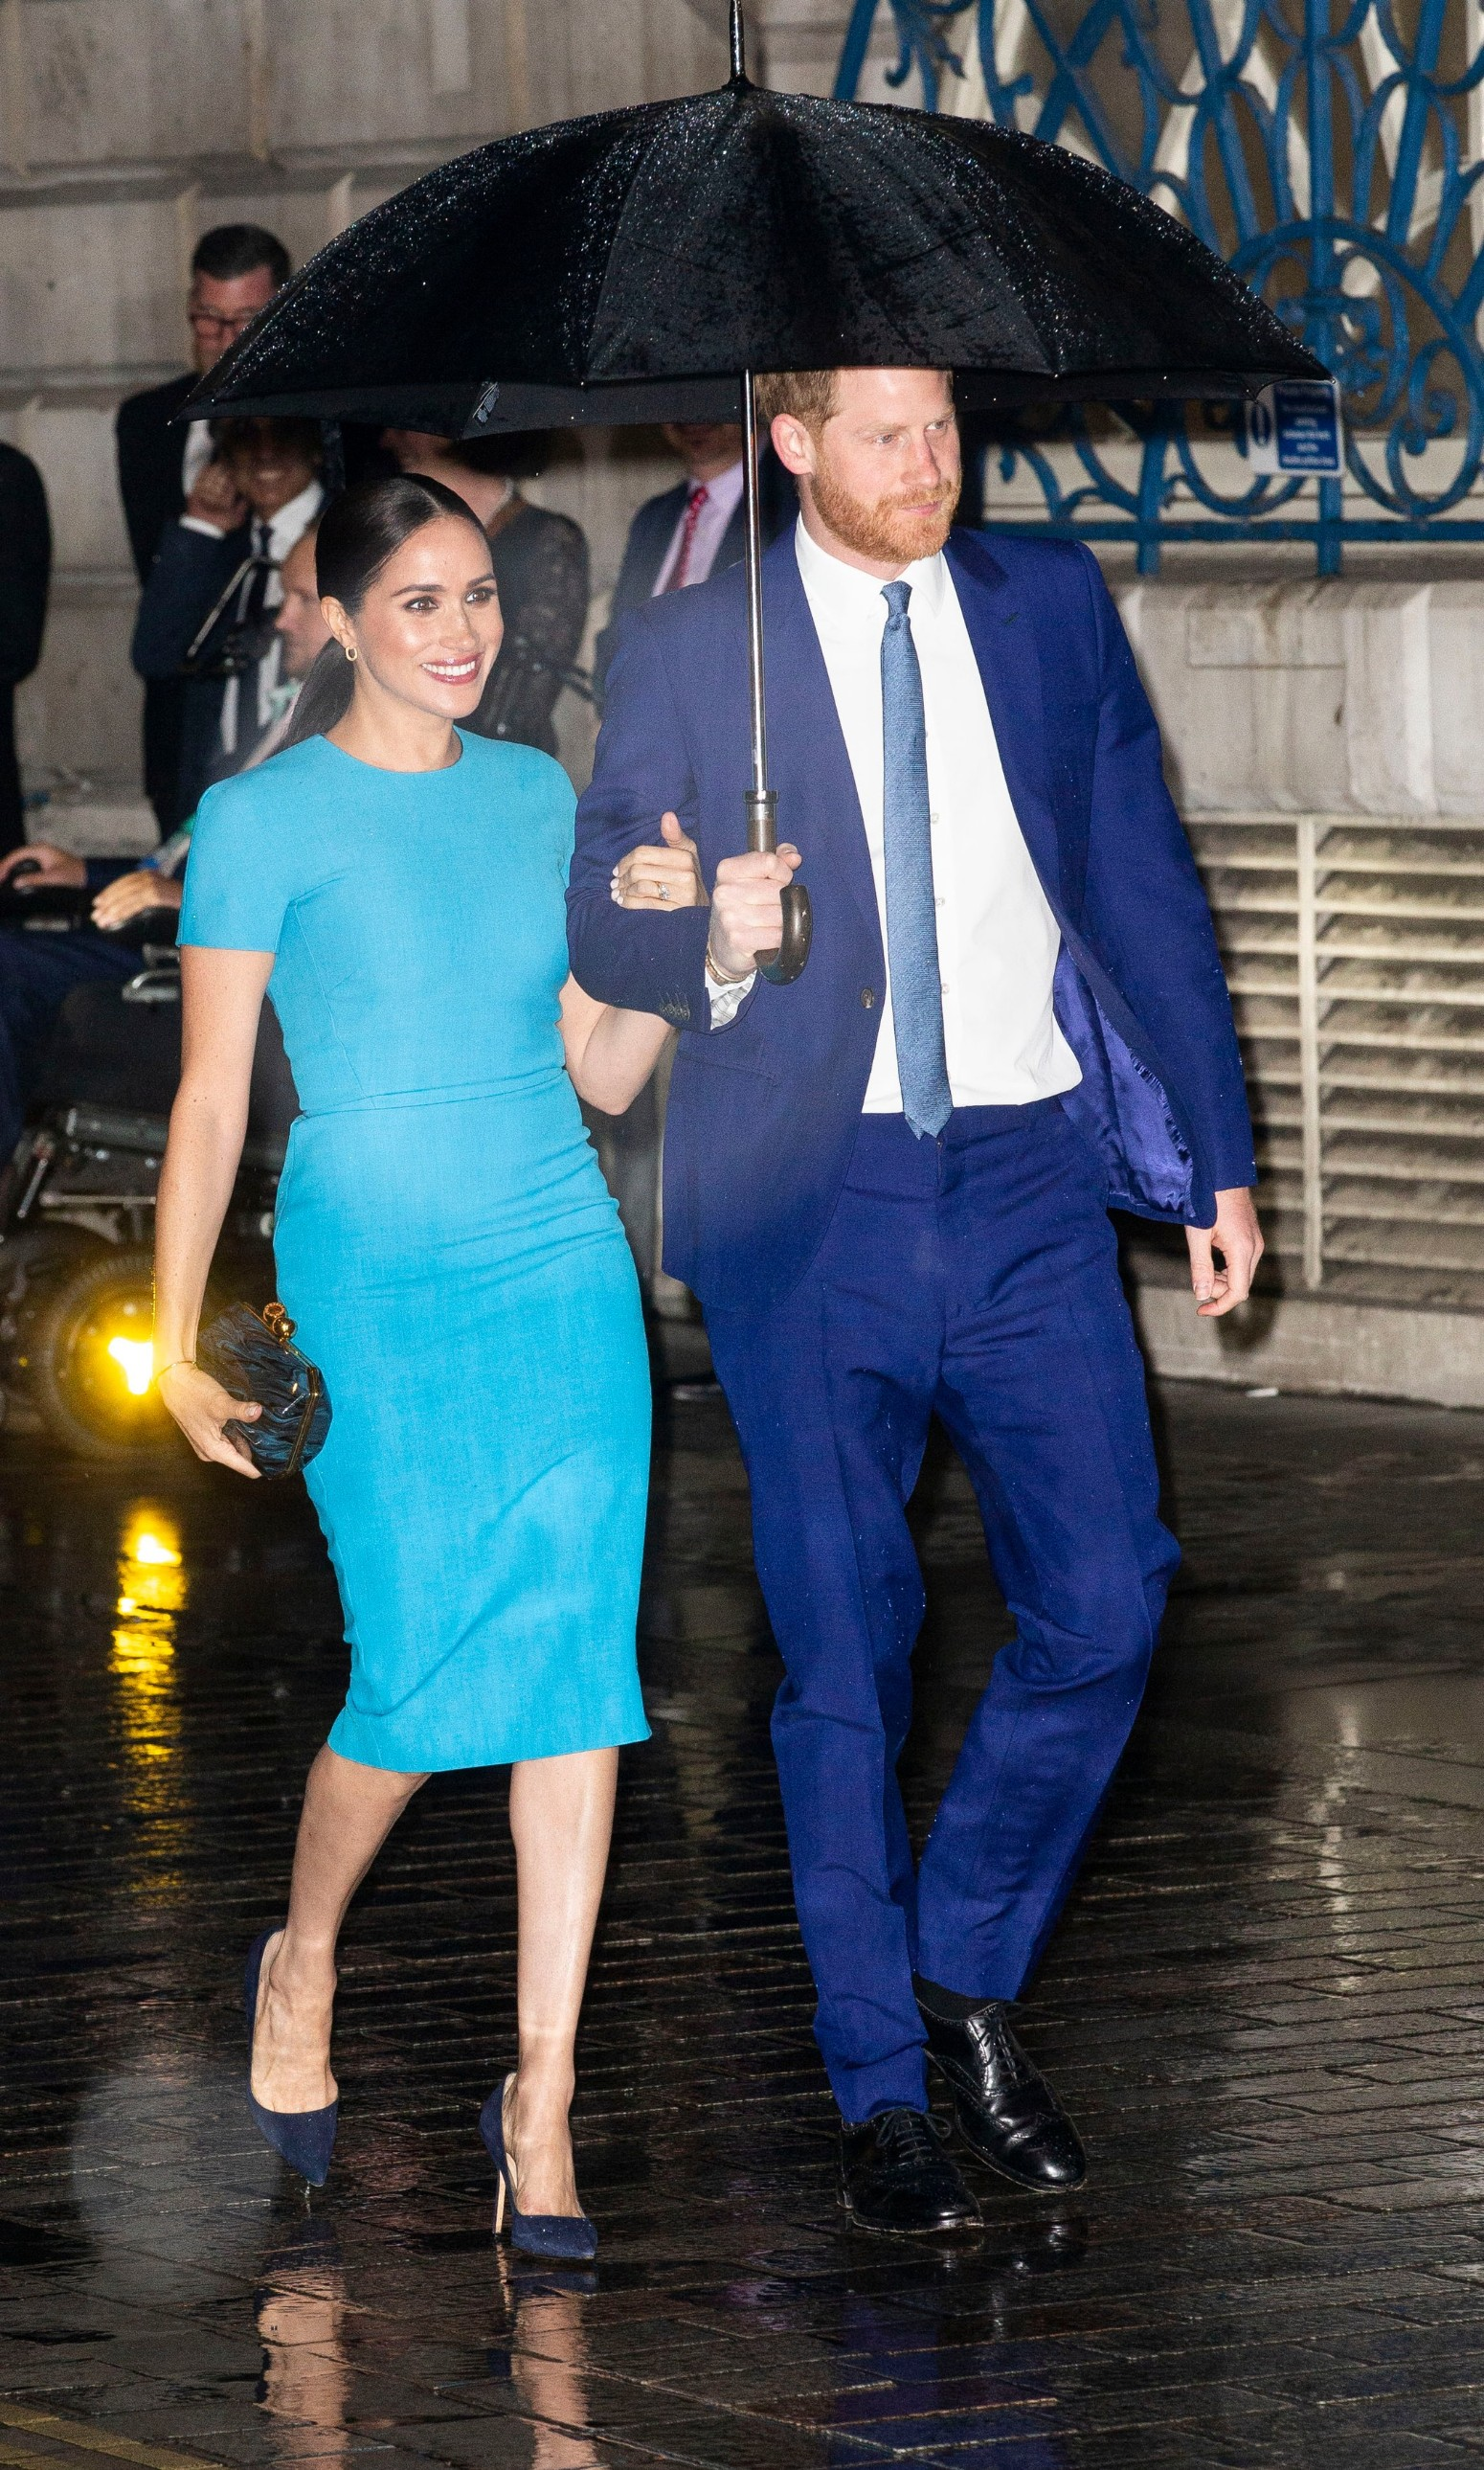 5 March 2020.  Prince Harry, The Duke of Sussex, Meghan, The Duchess of Sussex will attend the annual Endeavour Fund Awards at Mansion House on Thursday 5th March. Their Royal Highnesses will celebrate the achievements of wounded, injured and sick servicemen and women who have taken part in remarkable sporting and adventure challenges over the last year.,Image: 503581591, License: Rights-managed, Restrictions: , Model Release: no, Credit line: GoffPhotos.com / Goff Photos / Profimedia